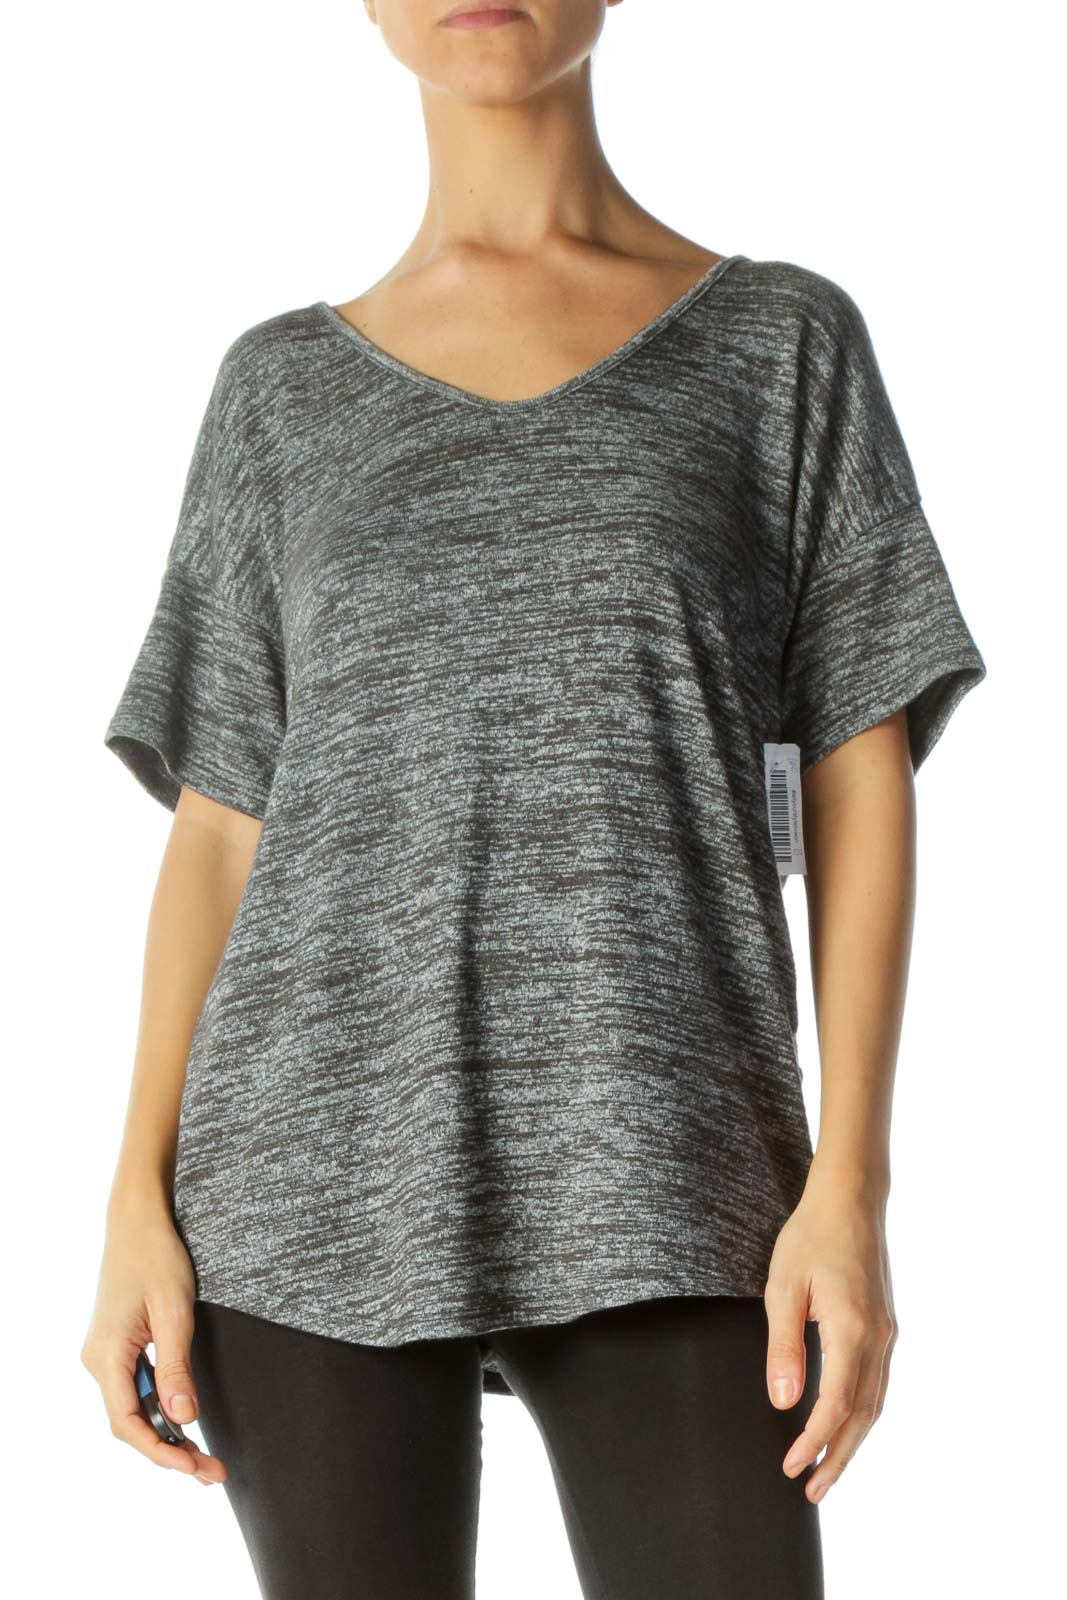 Gray Mottled Round Neck Short Sleeve Knit Top